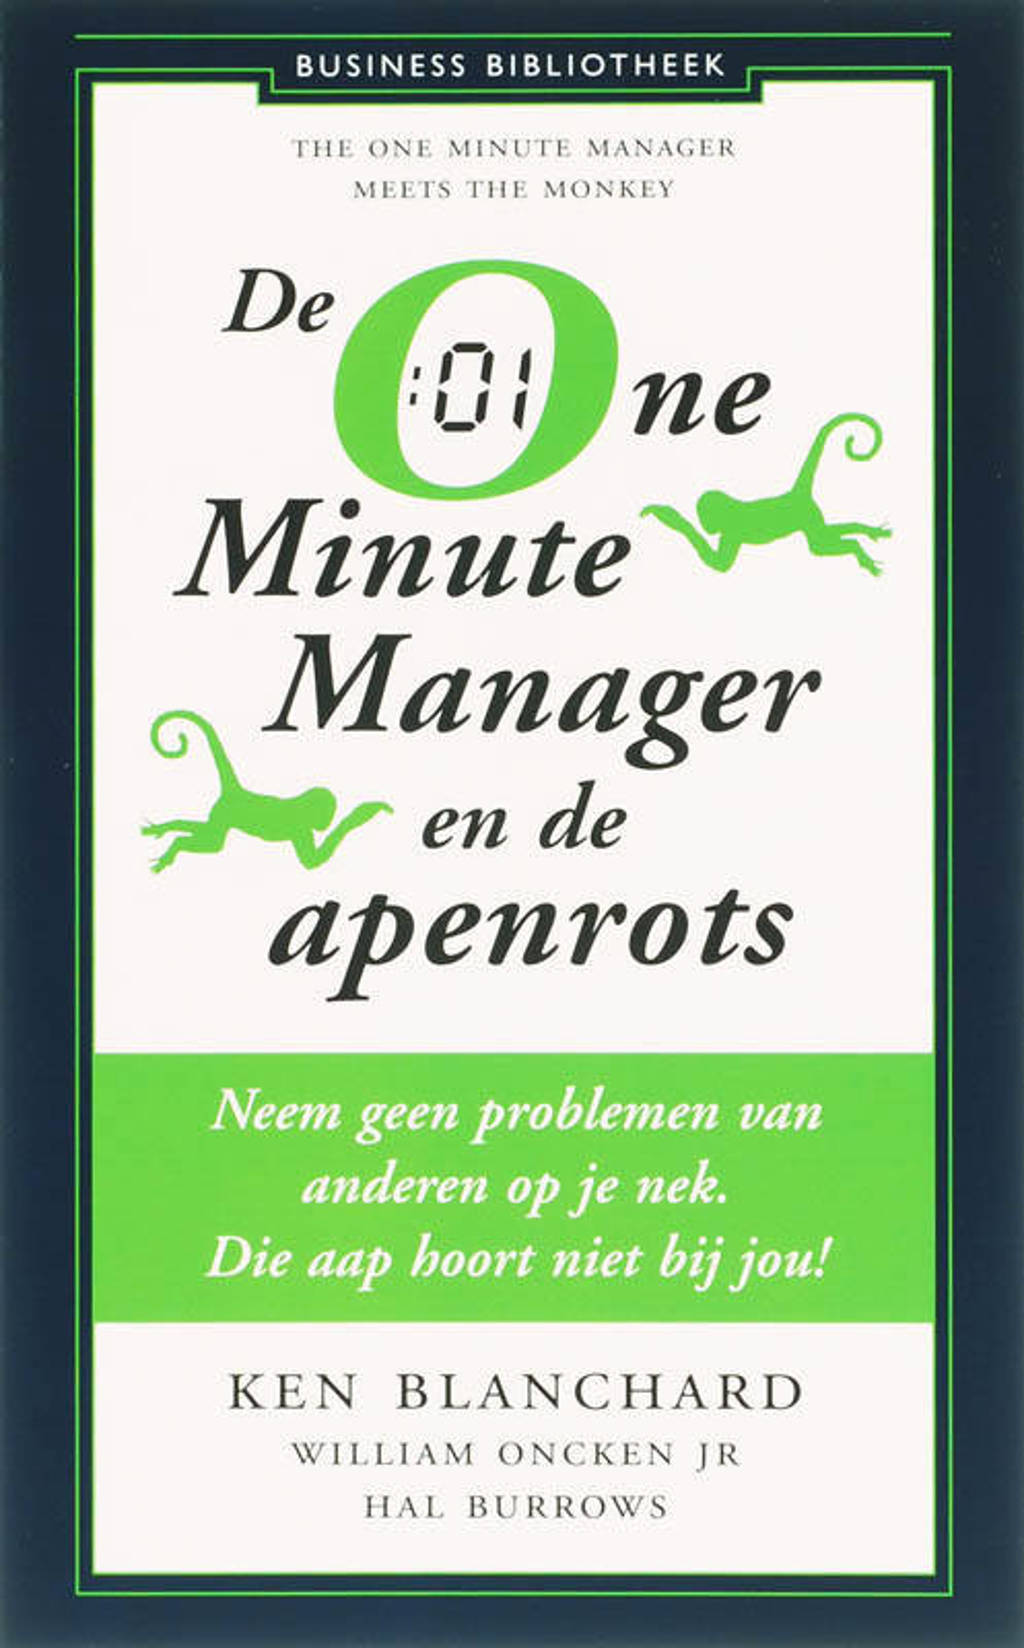 One Minute Manager en de apenrots - Ken Blanchard, William Oncken Jr en Hal Burrows